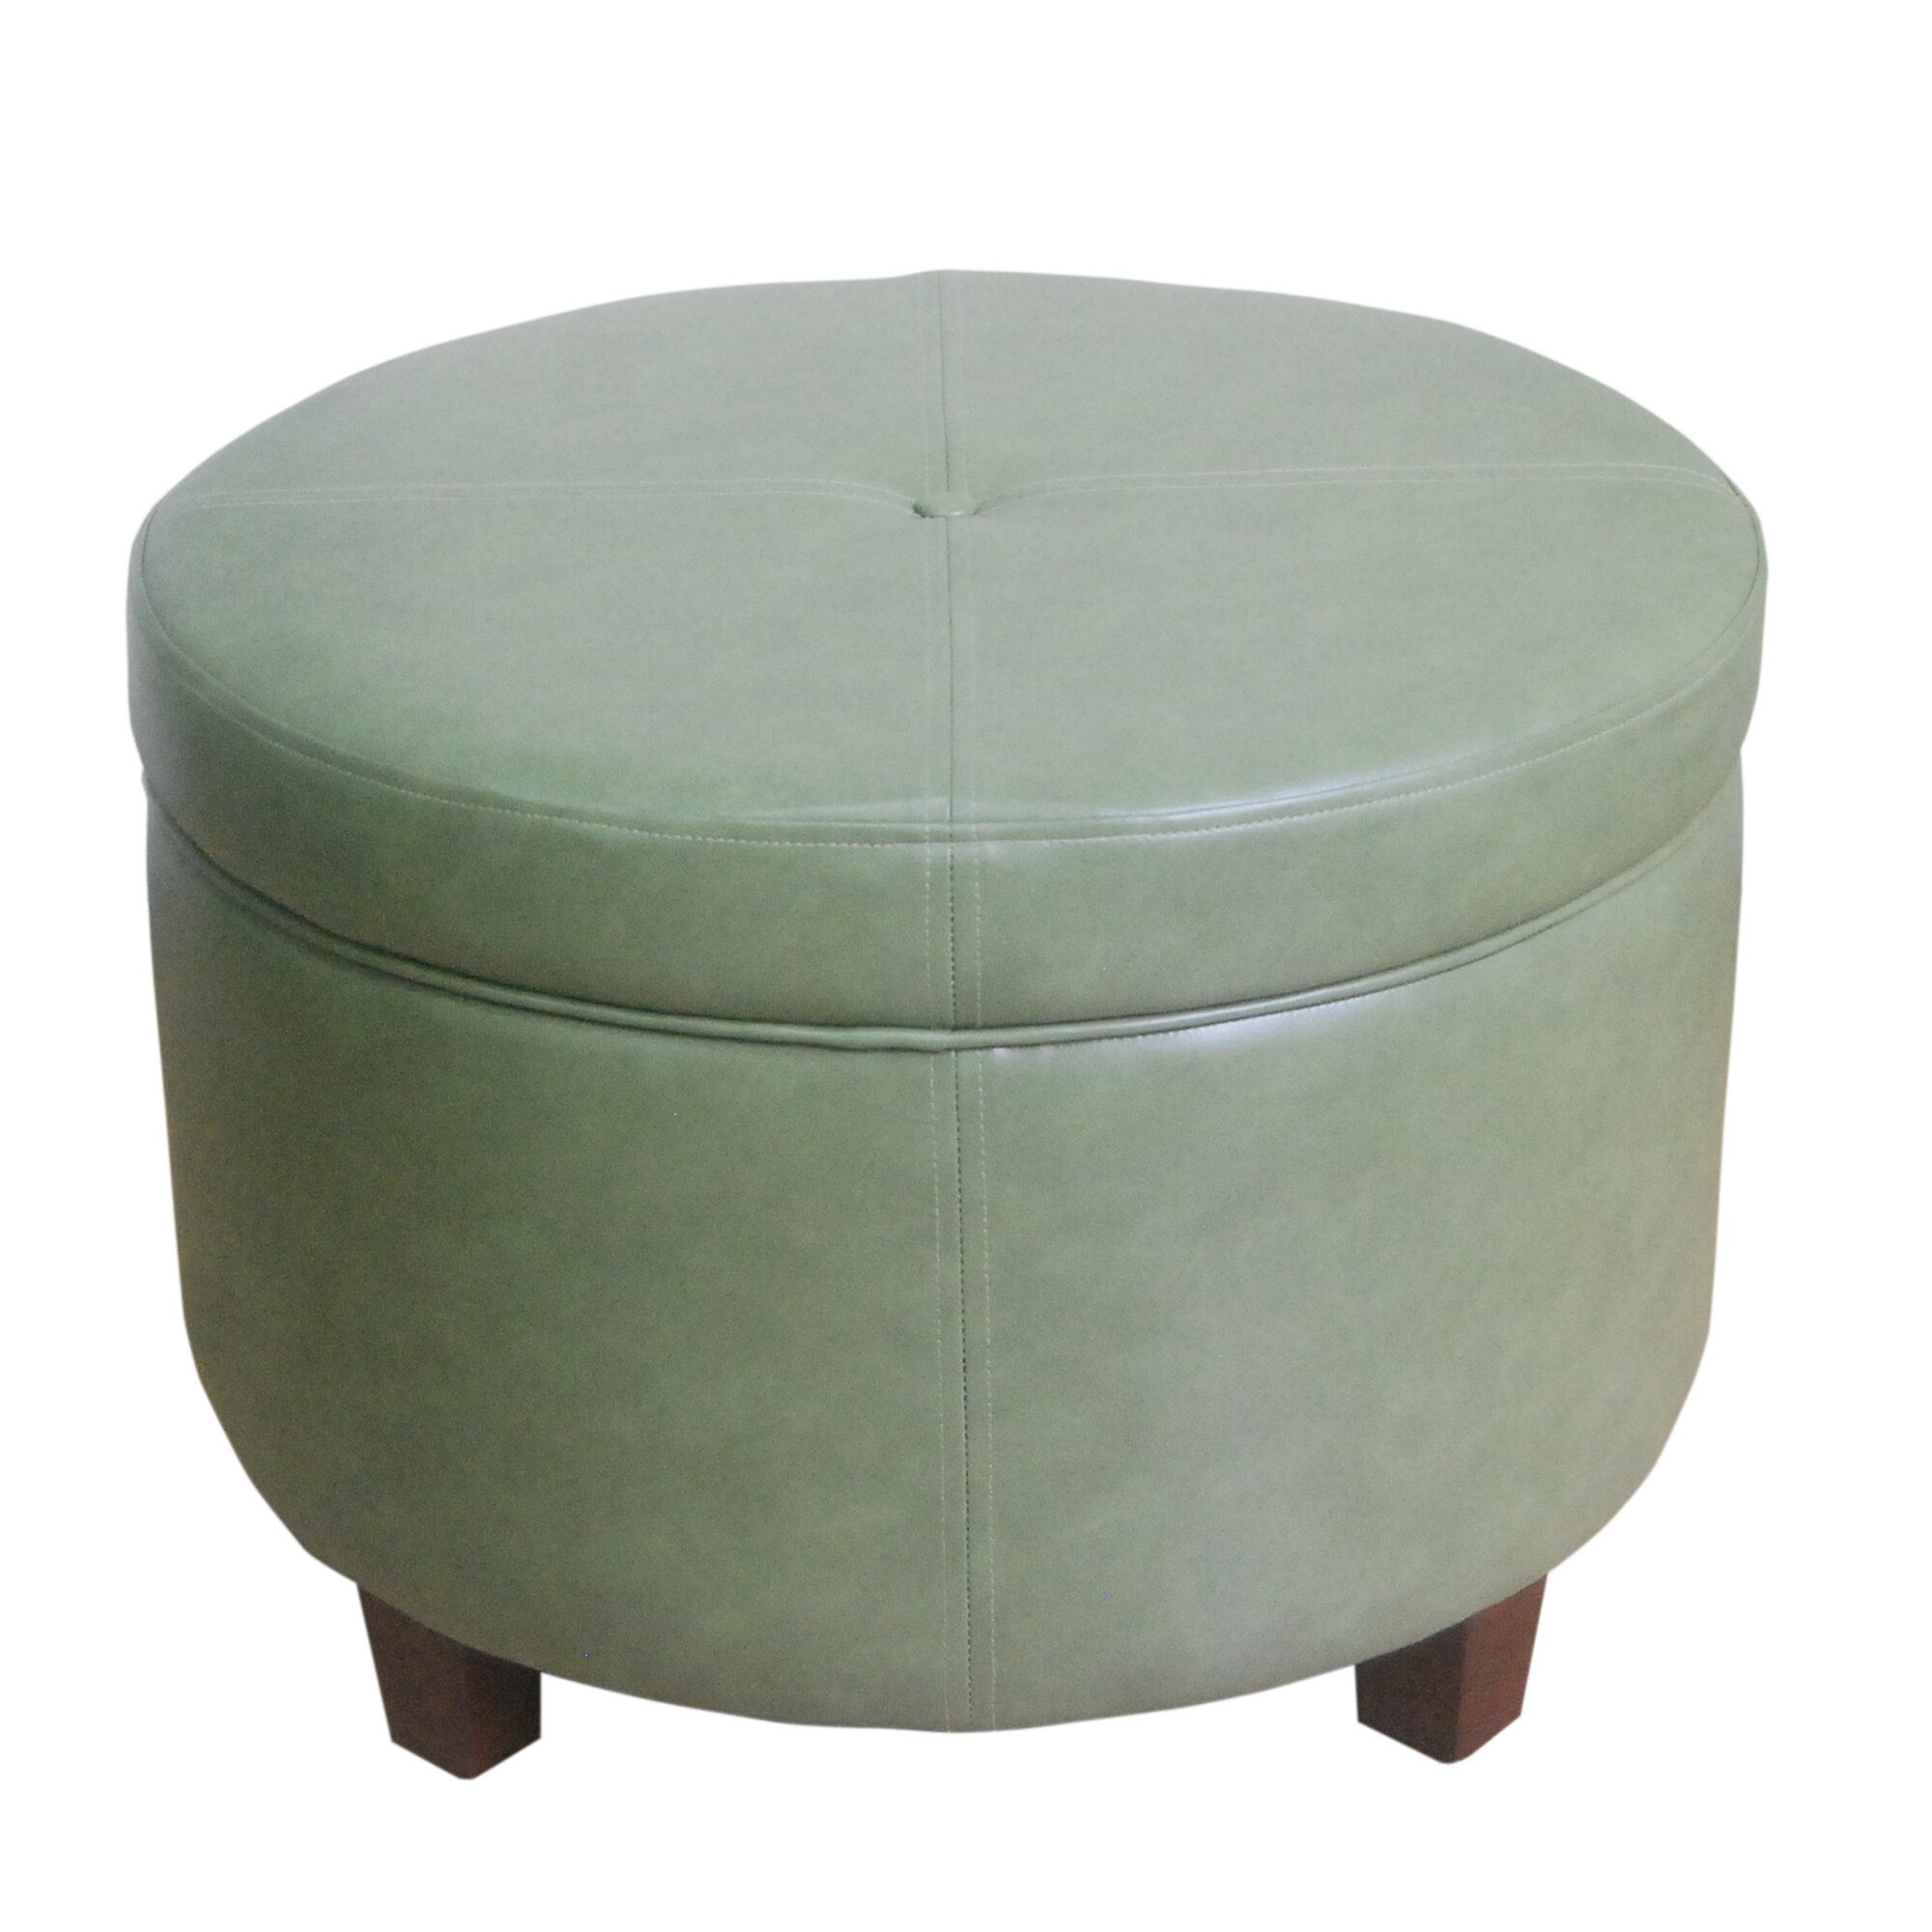 Homepop large round storage ottoman in leather ebay Round storage ottoman